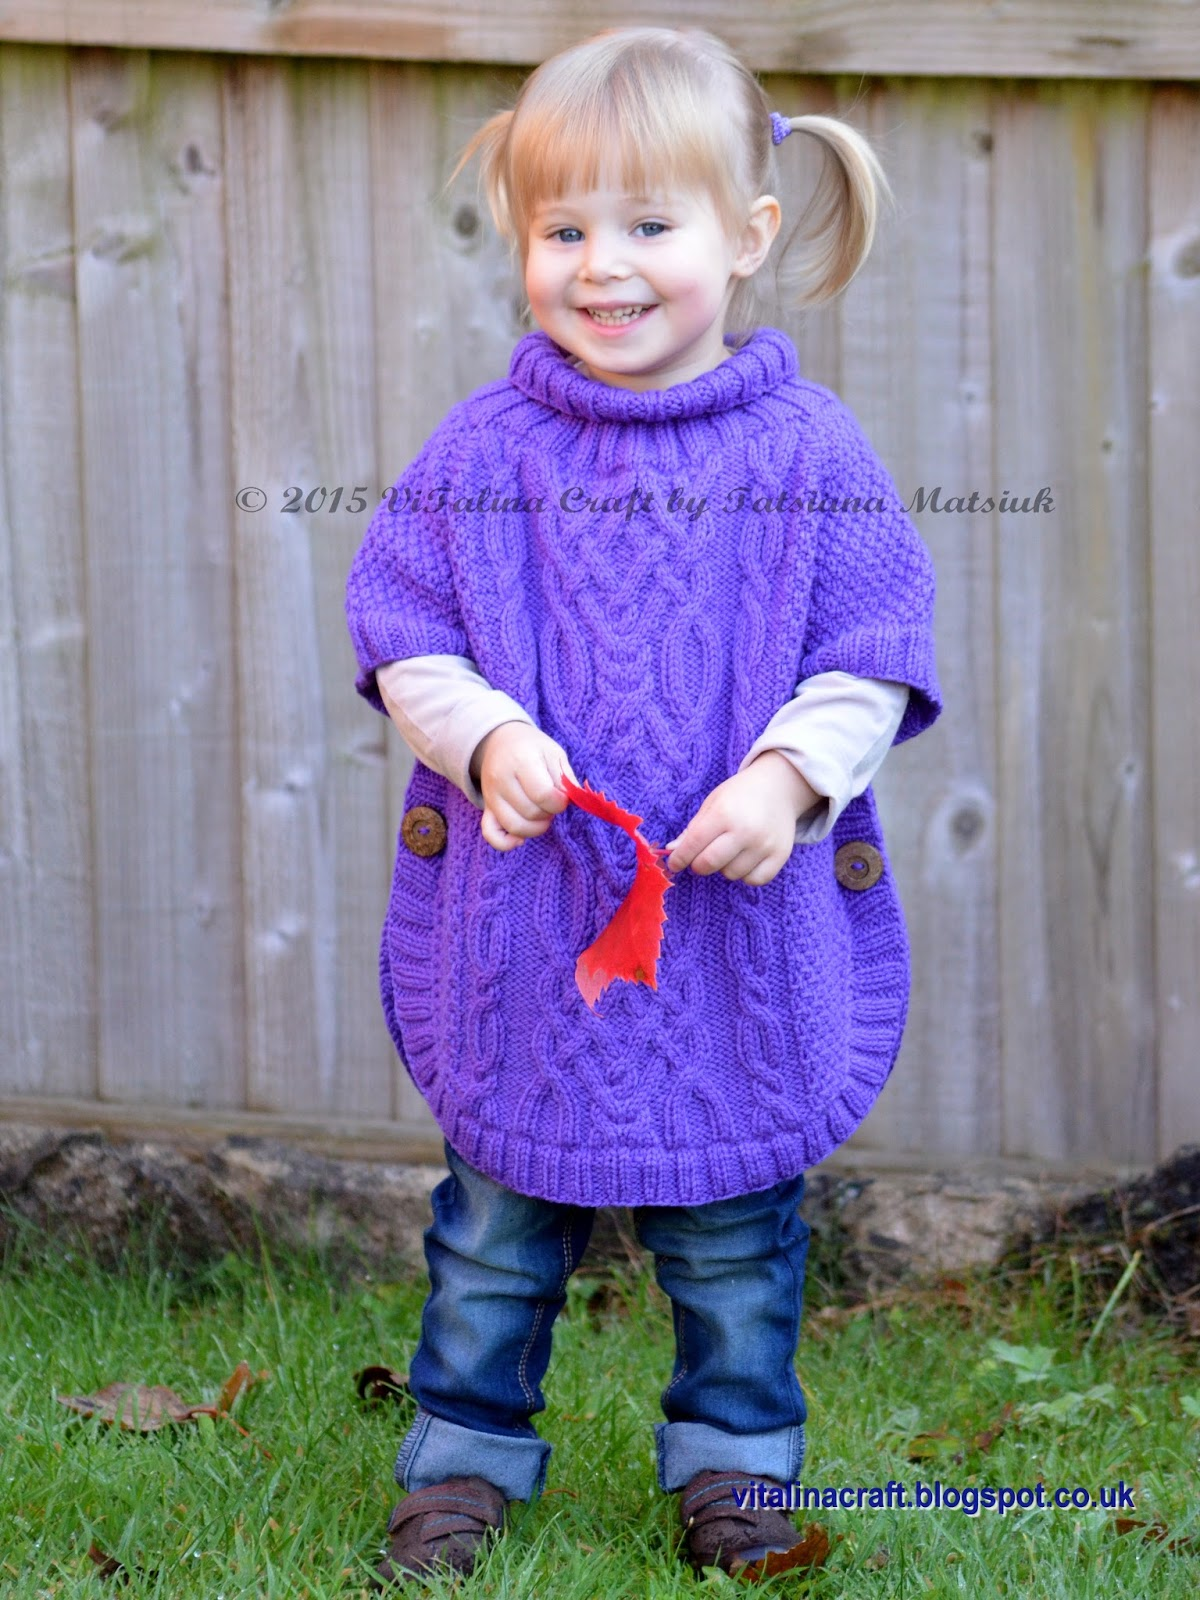 Knitting Patterns For Infants And Toddlers : Knitting Pattern - Cable Fantasy Poncho (Toddler and Child ...